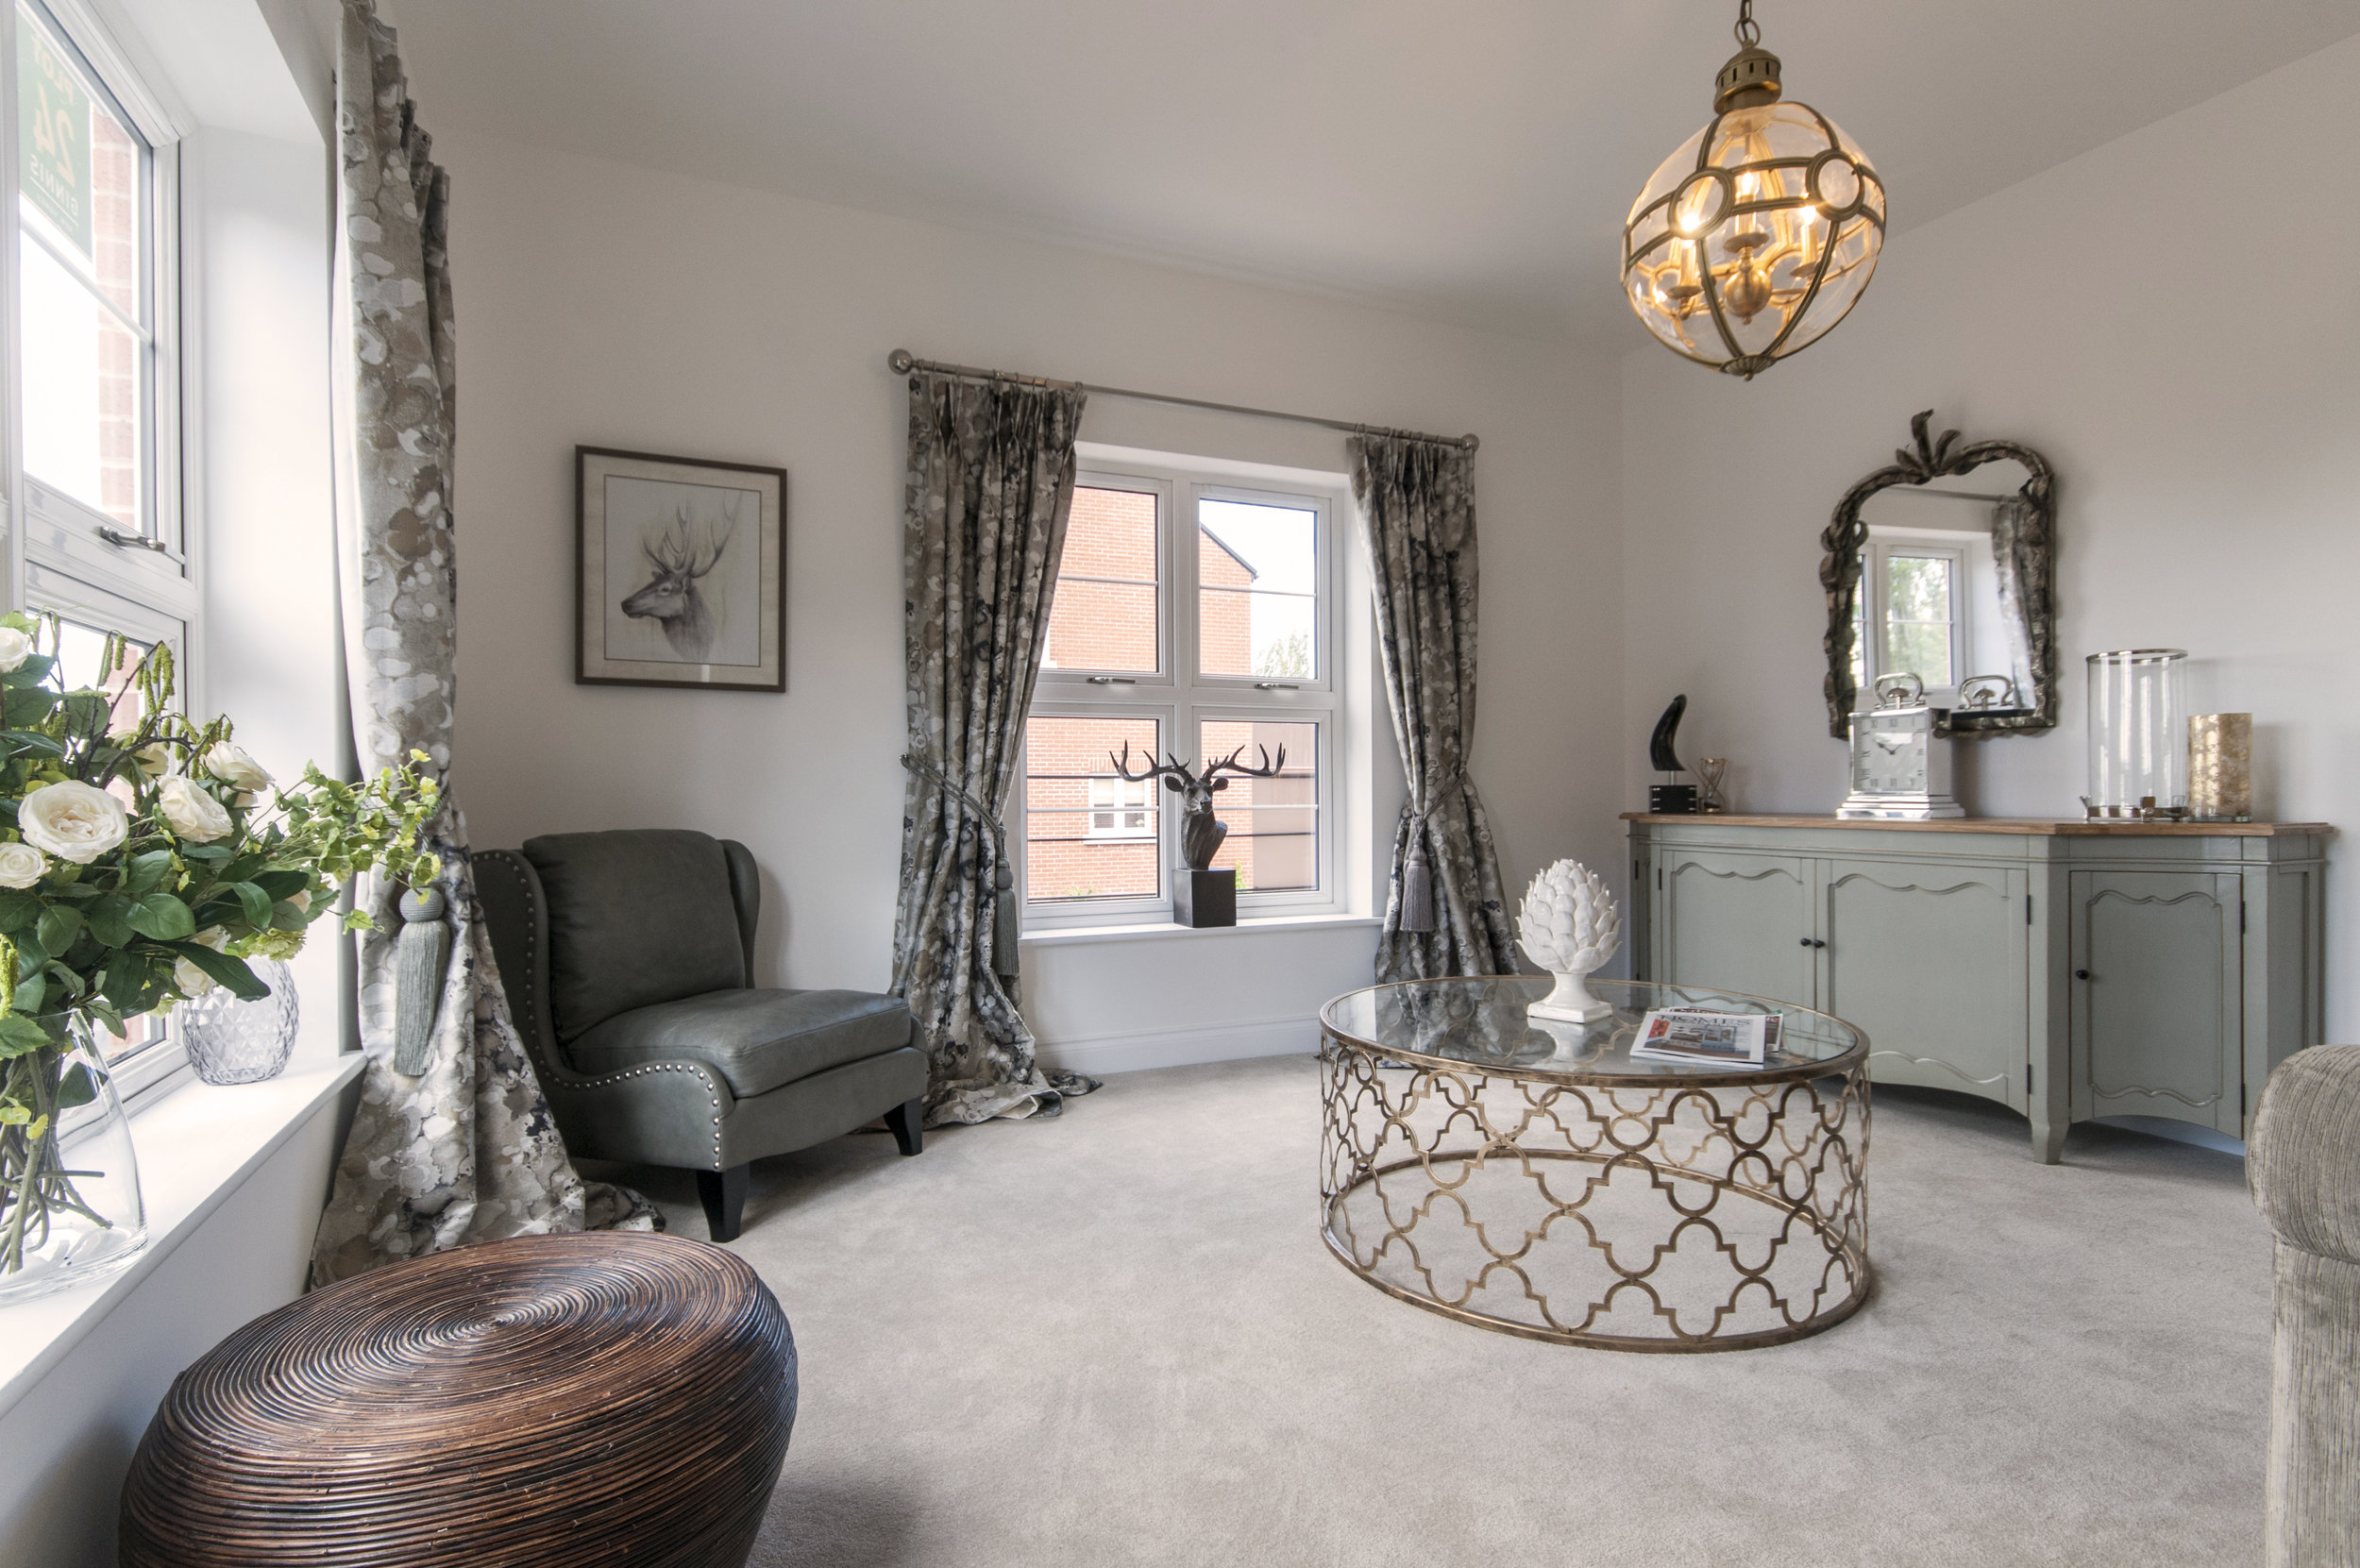 Plot 24 - the four bedroom home at Deer Park in Ripley - has an upgraded kitchen with integrated Bosch appliances. Penguin PR: public relations, media and communications